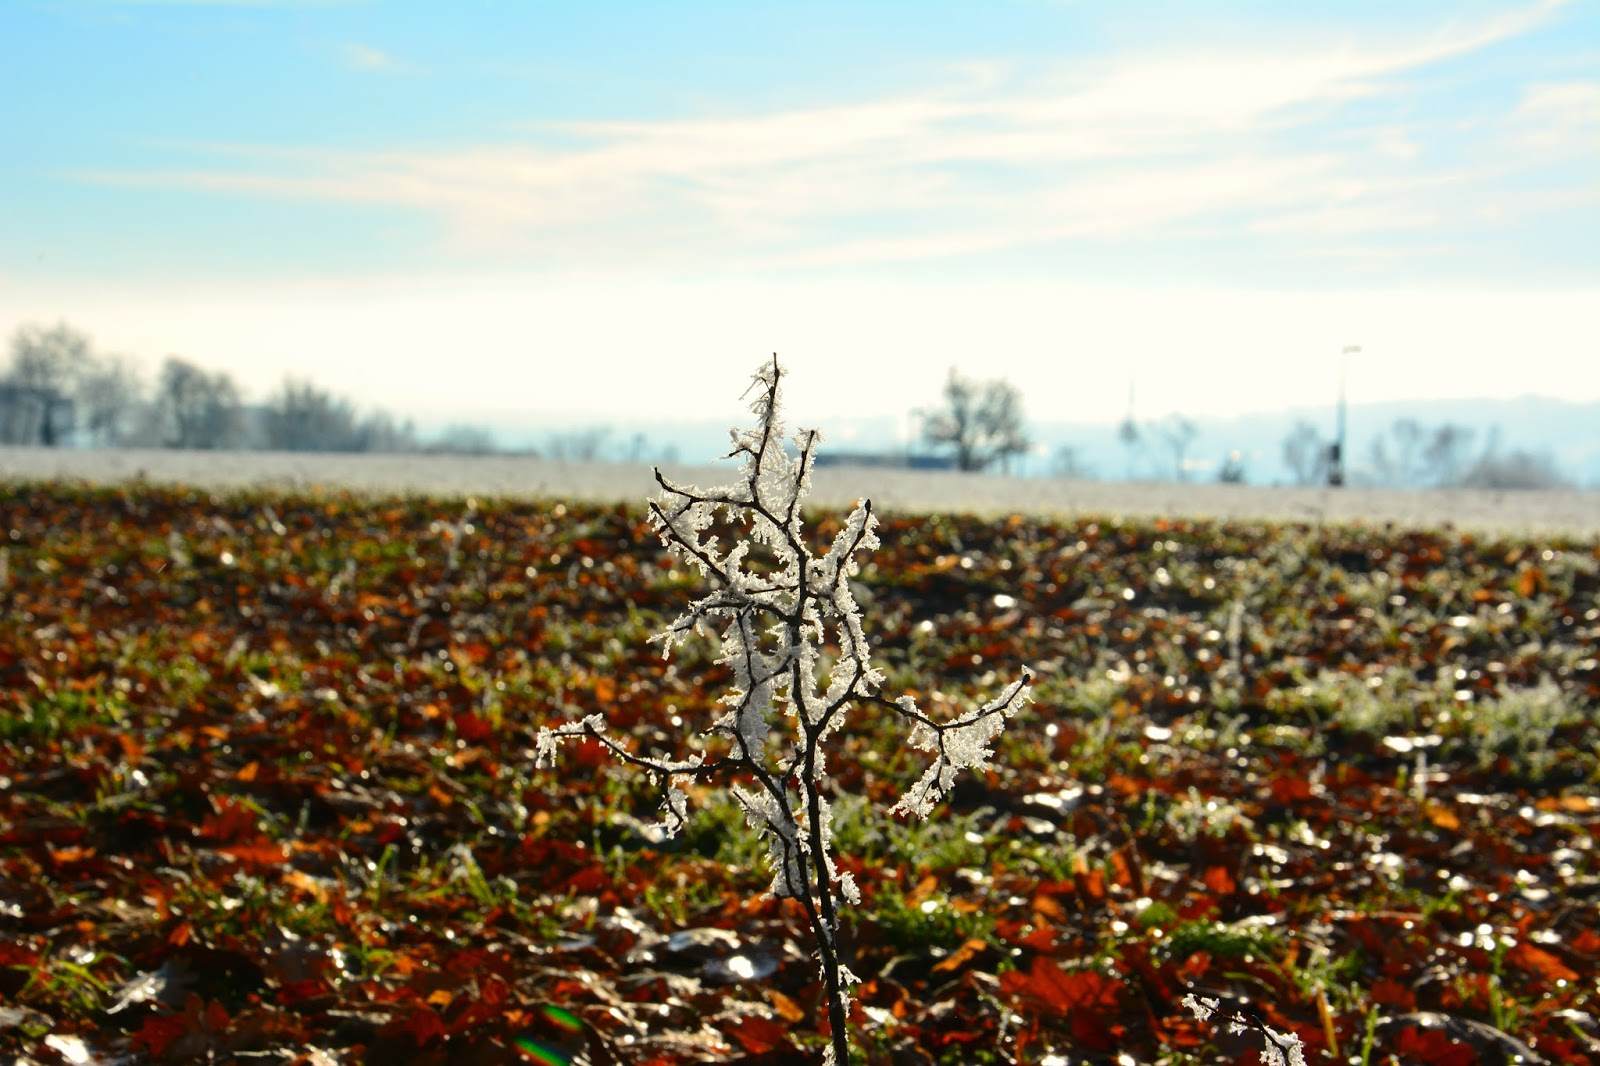 Single tree branch on ground with frost and a blurry view of blue sky